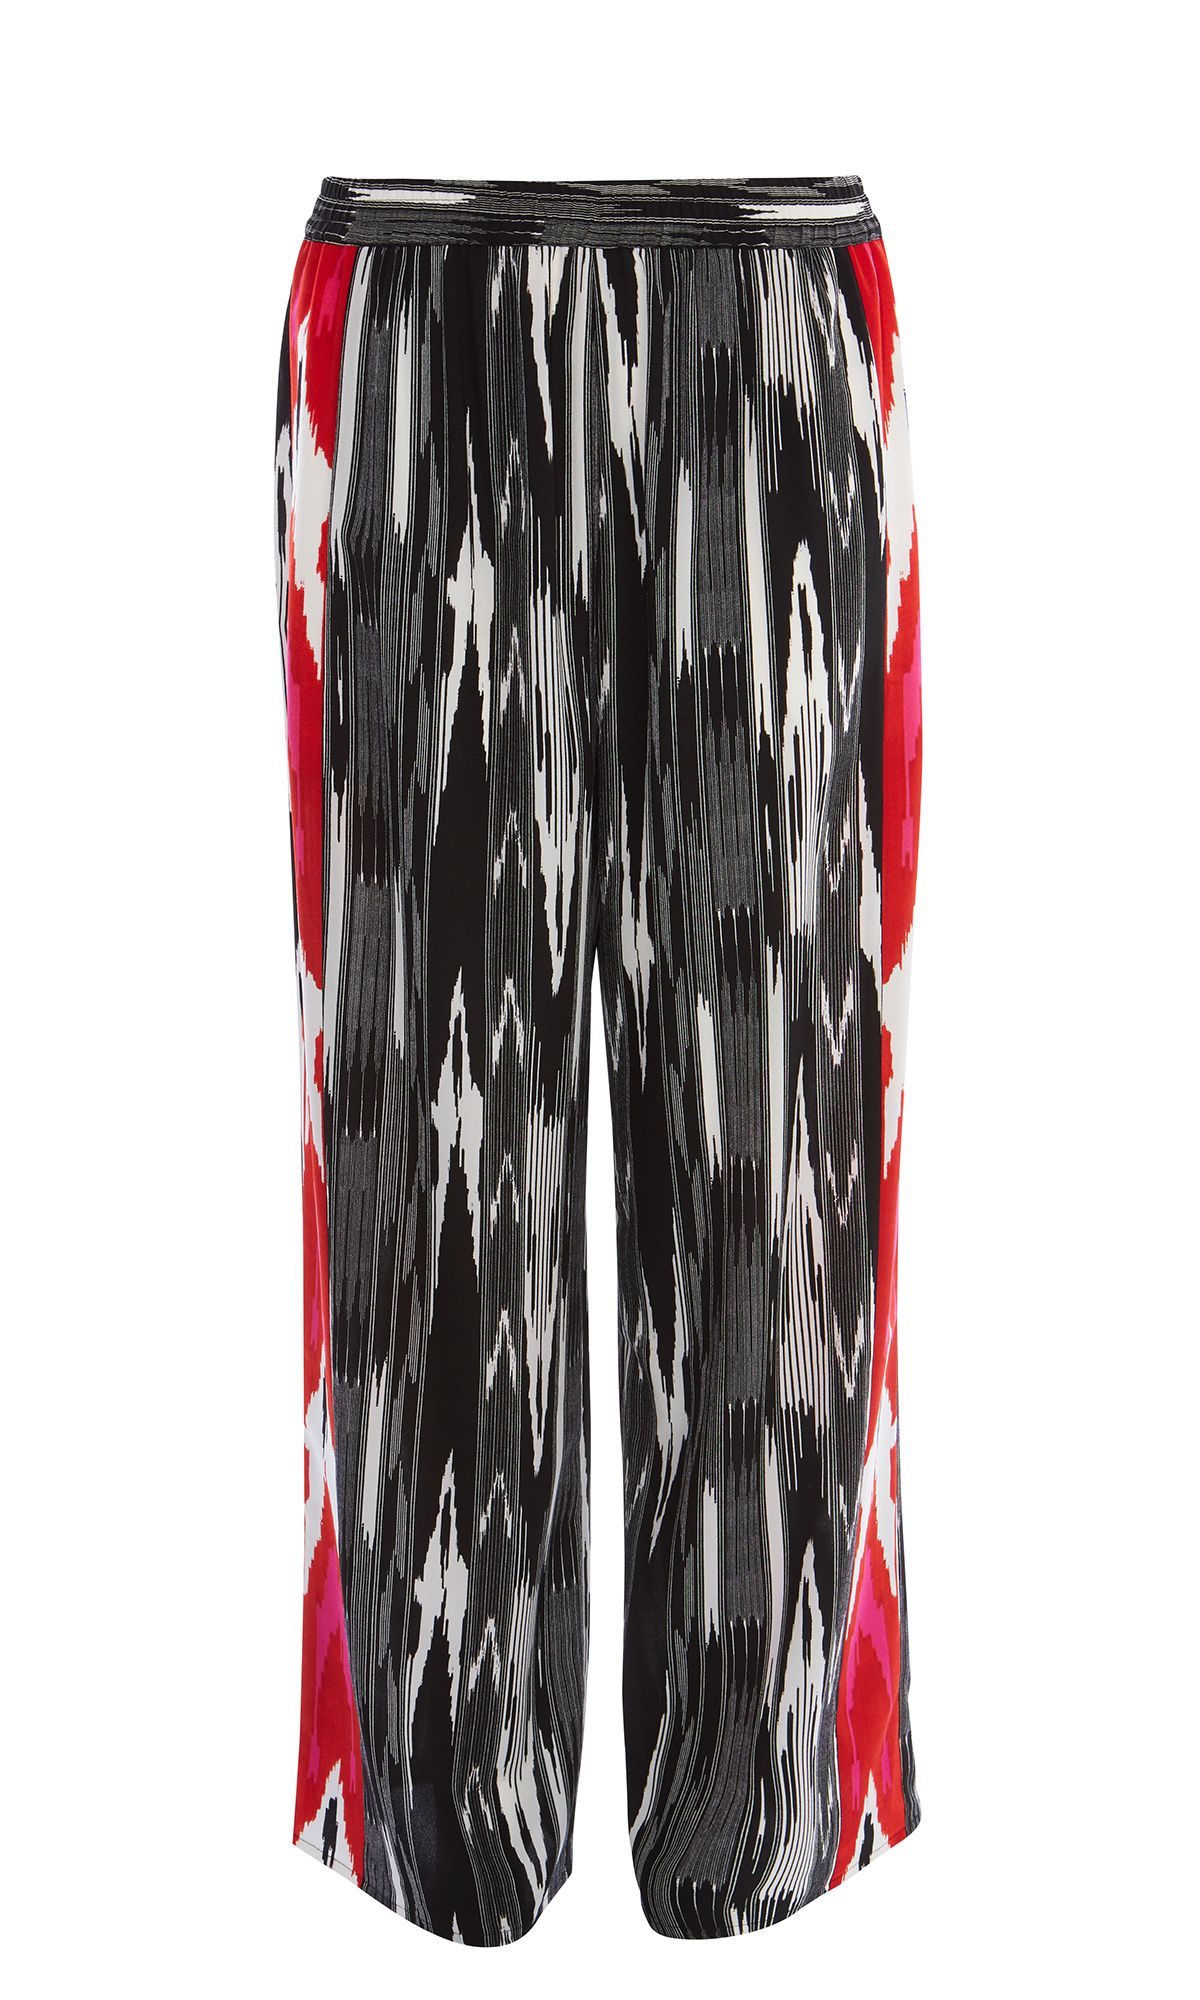 Karen Millen Abstract Print Trousers, Multi-Coloured